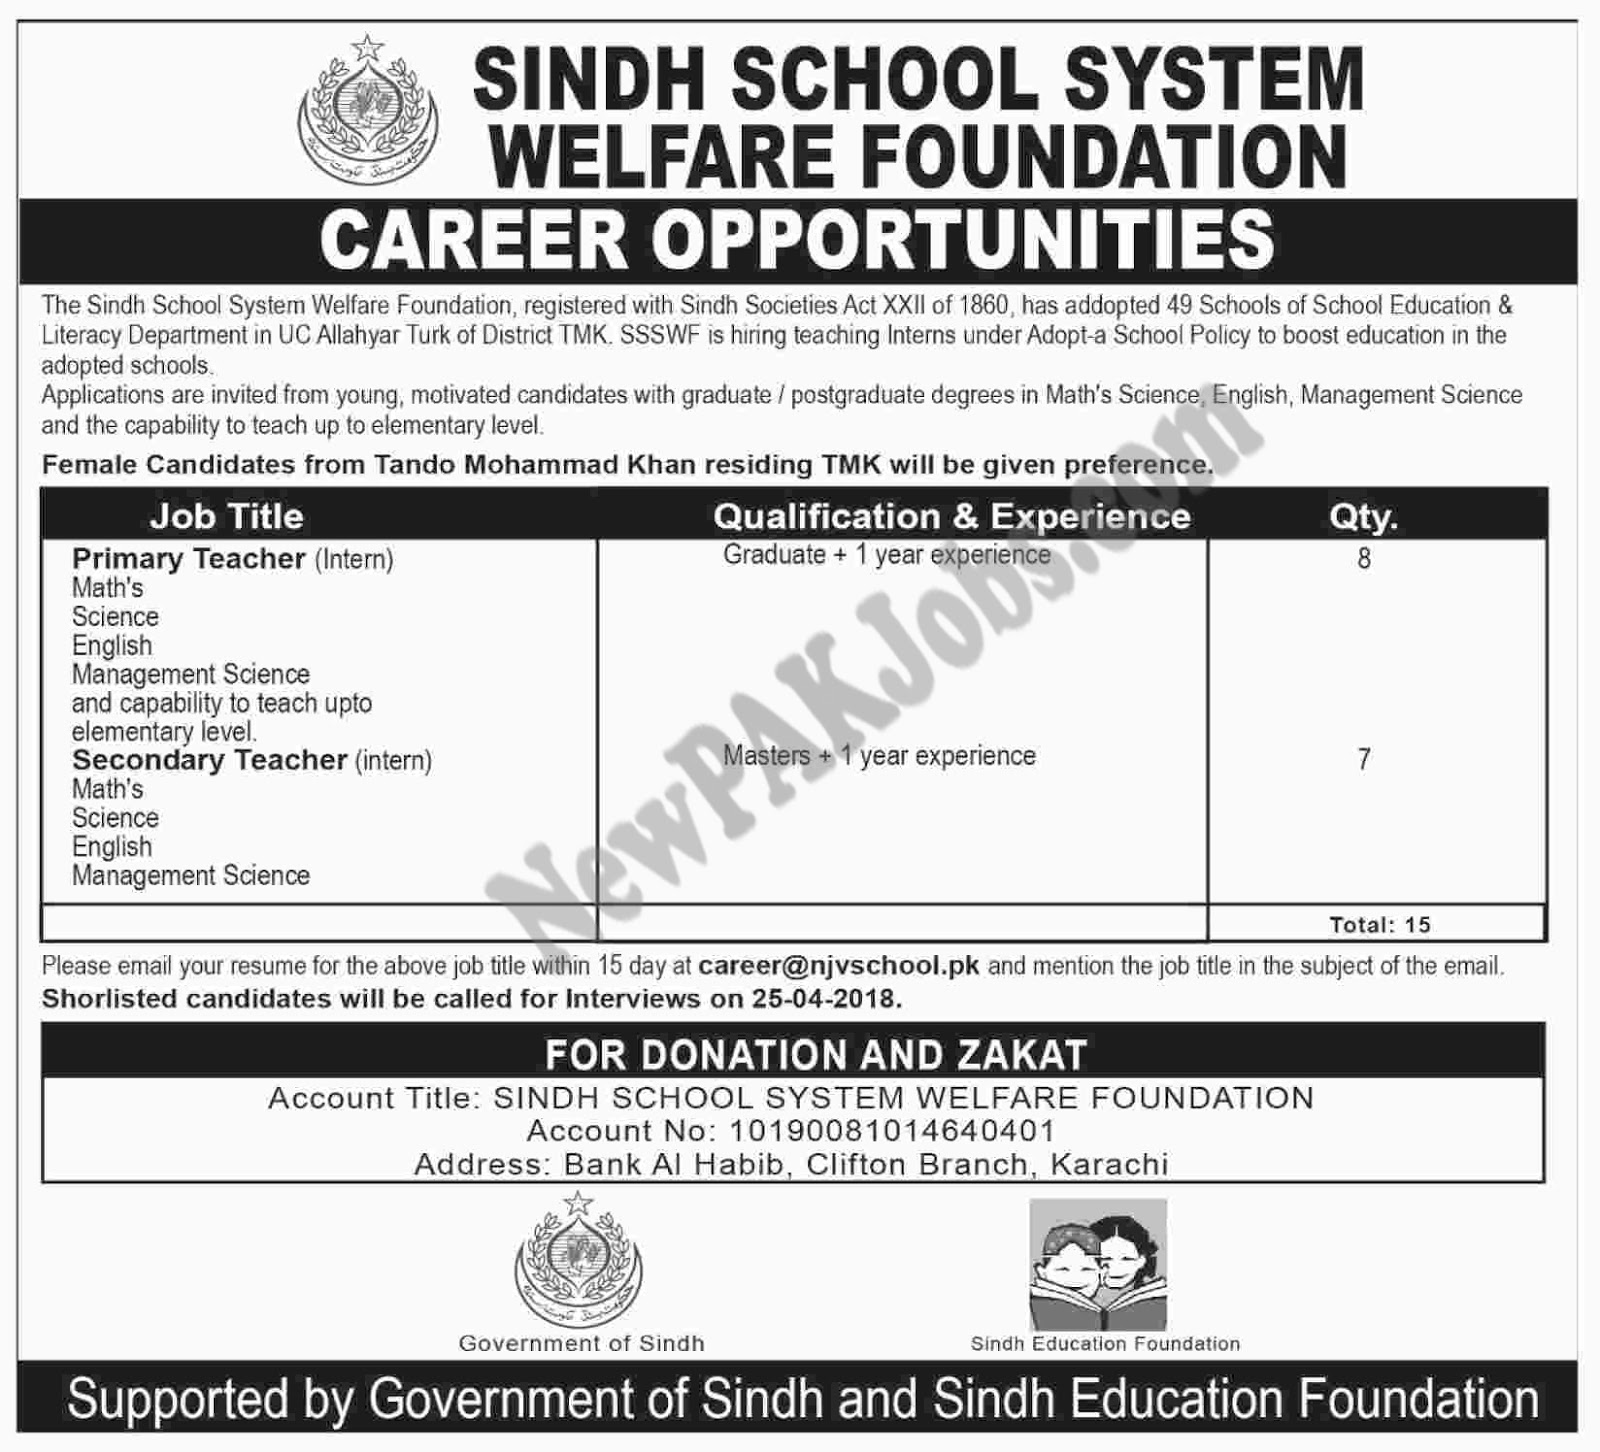 Sindh Education Foundation for Primary Teachers, Secondary Teachers